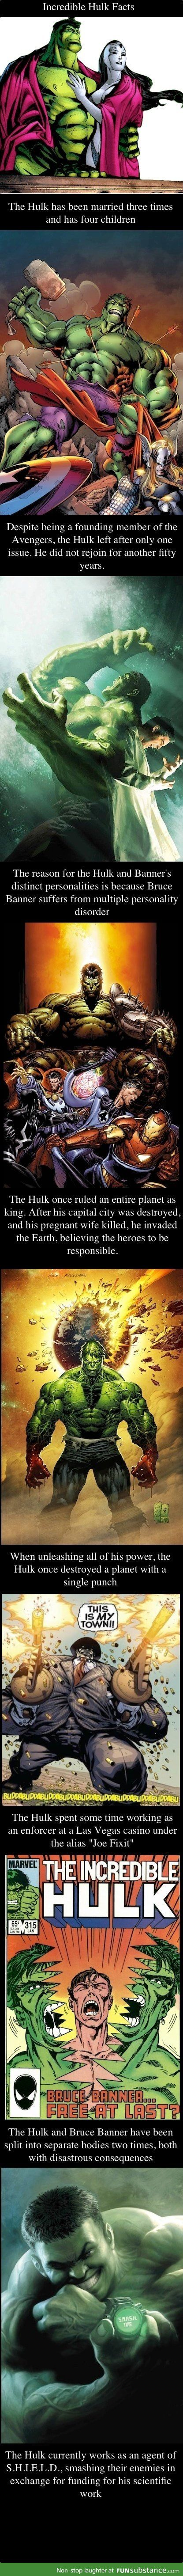 Incredible hulk facts compilation